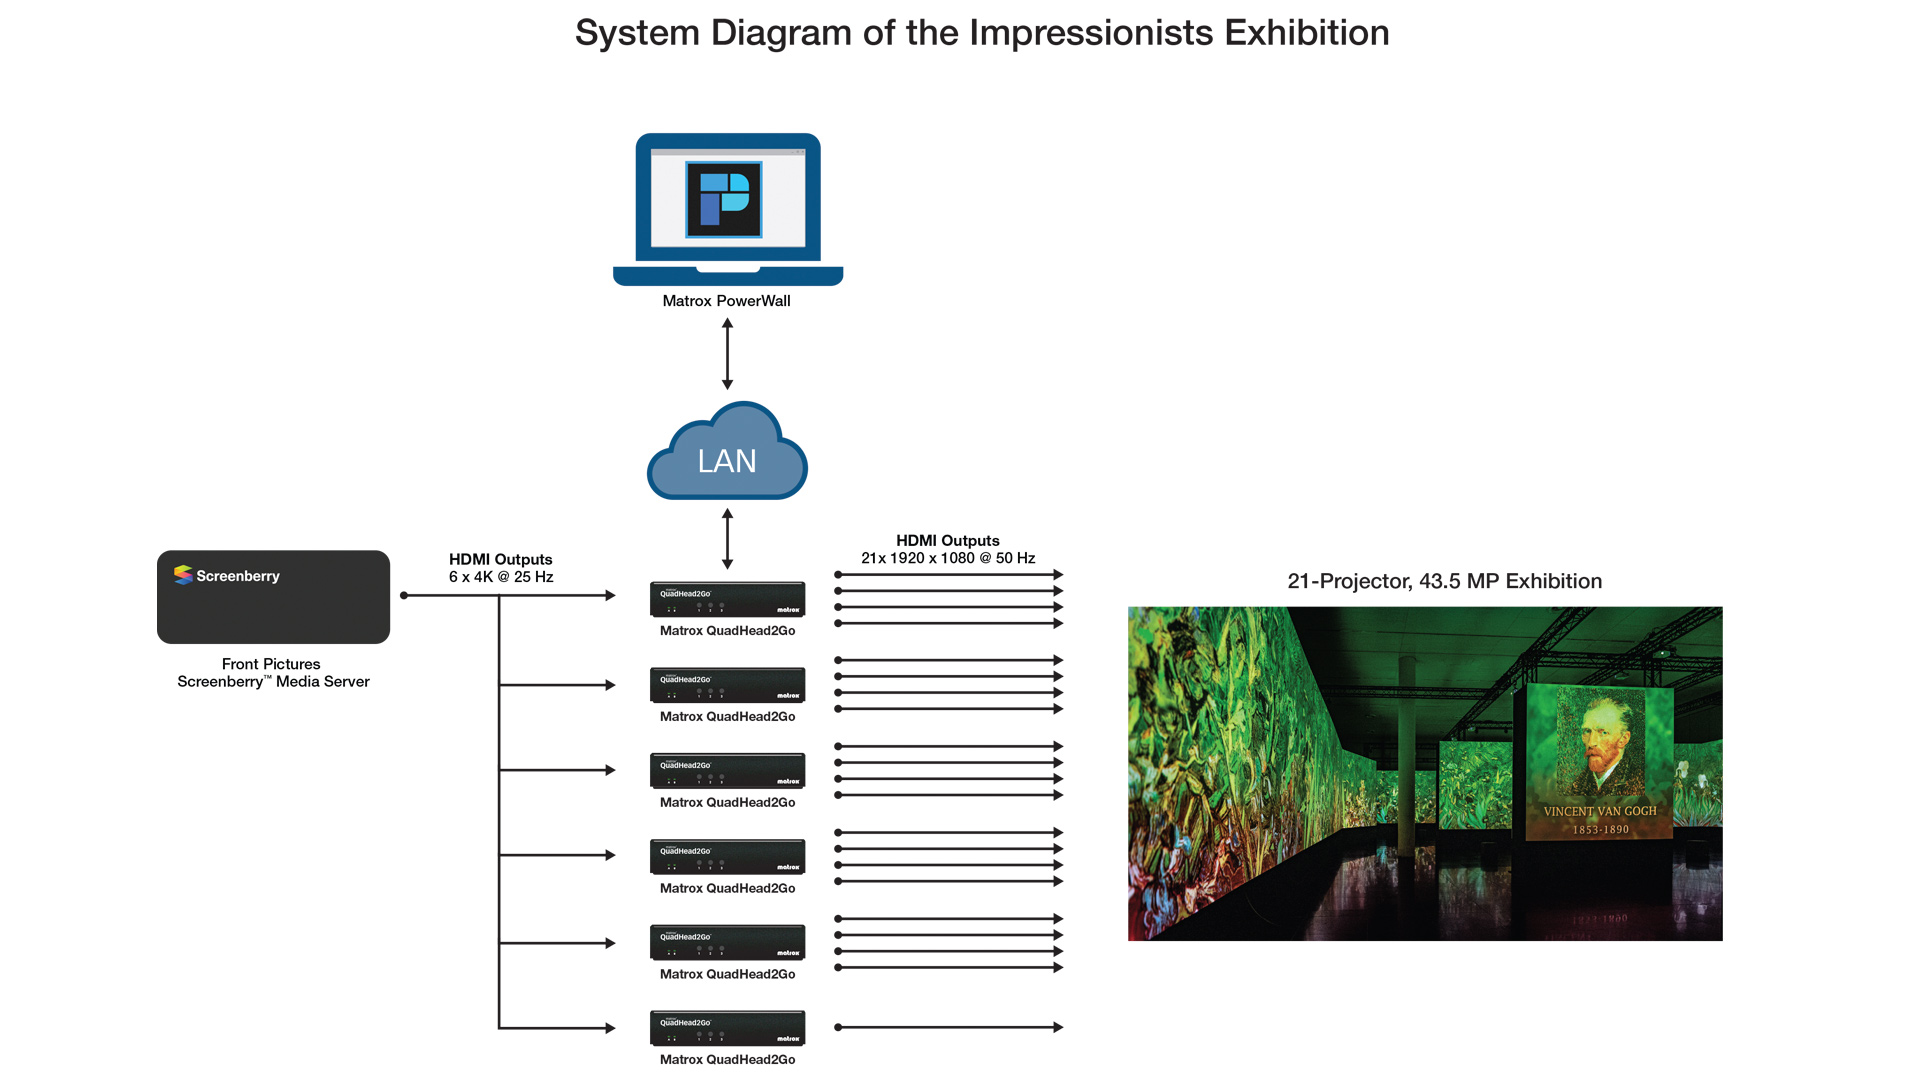 System Diagram of the Impressionists Exhibition